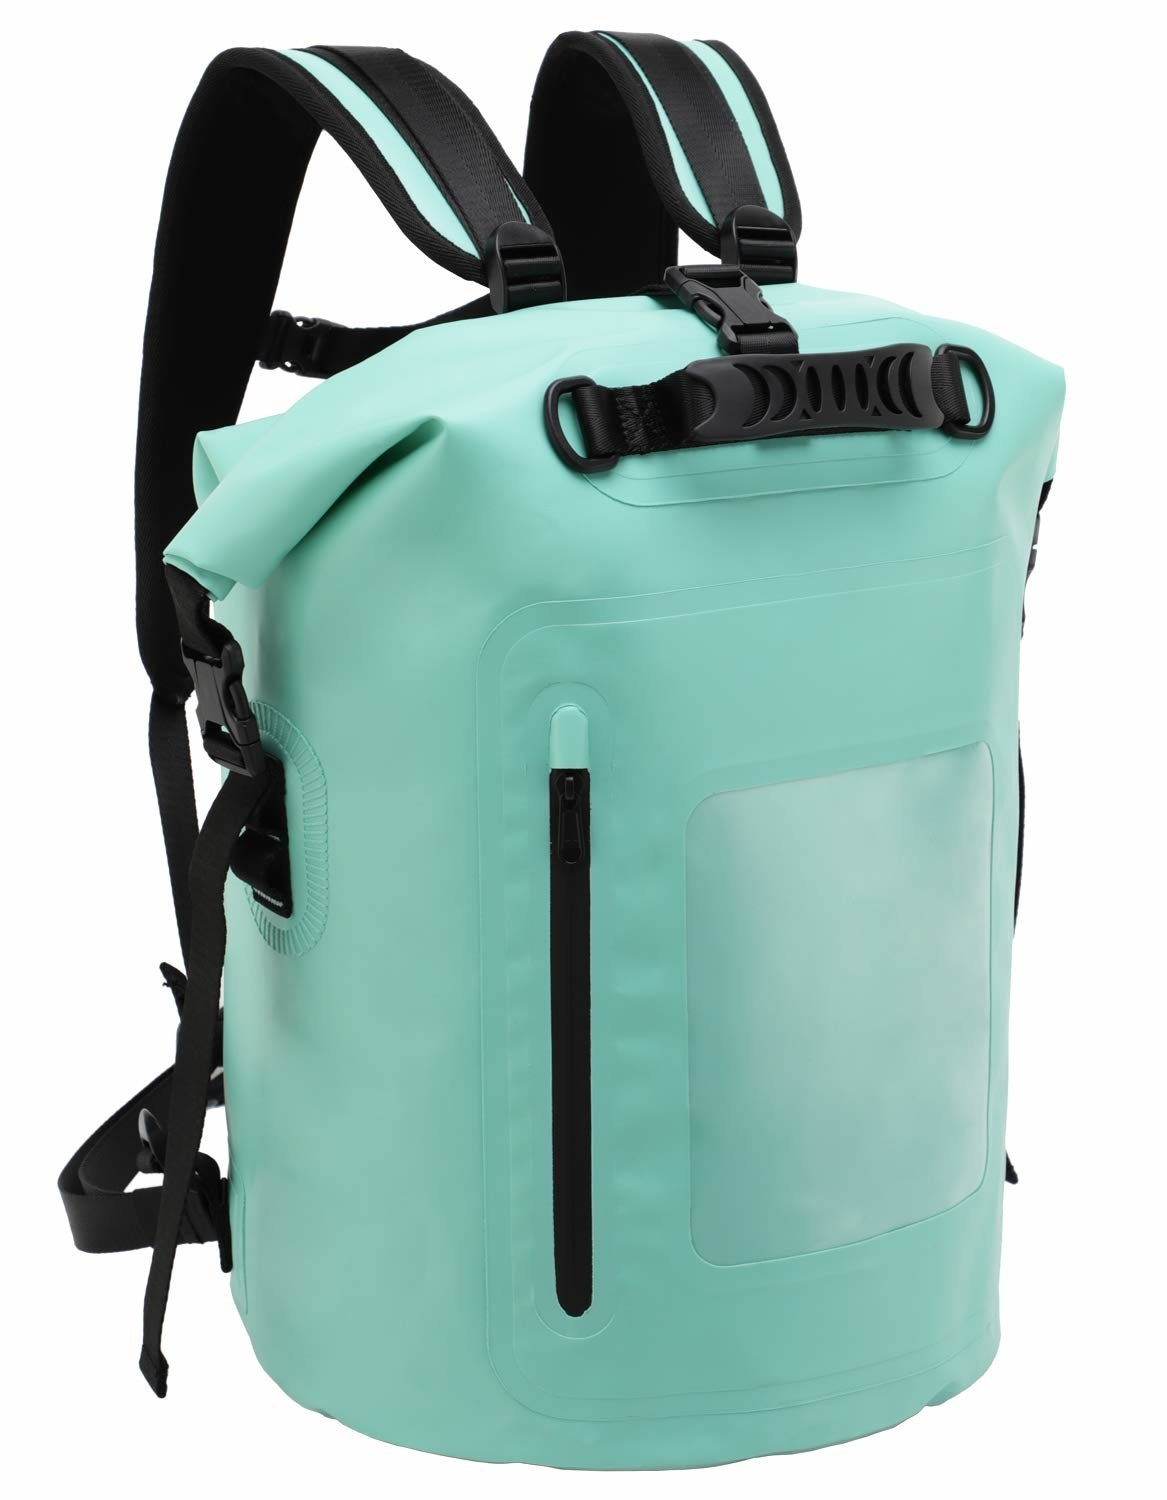 teal backpack with roll-up top and front clear window pocket